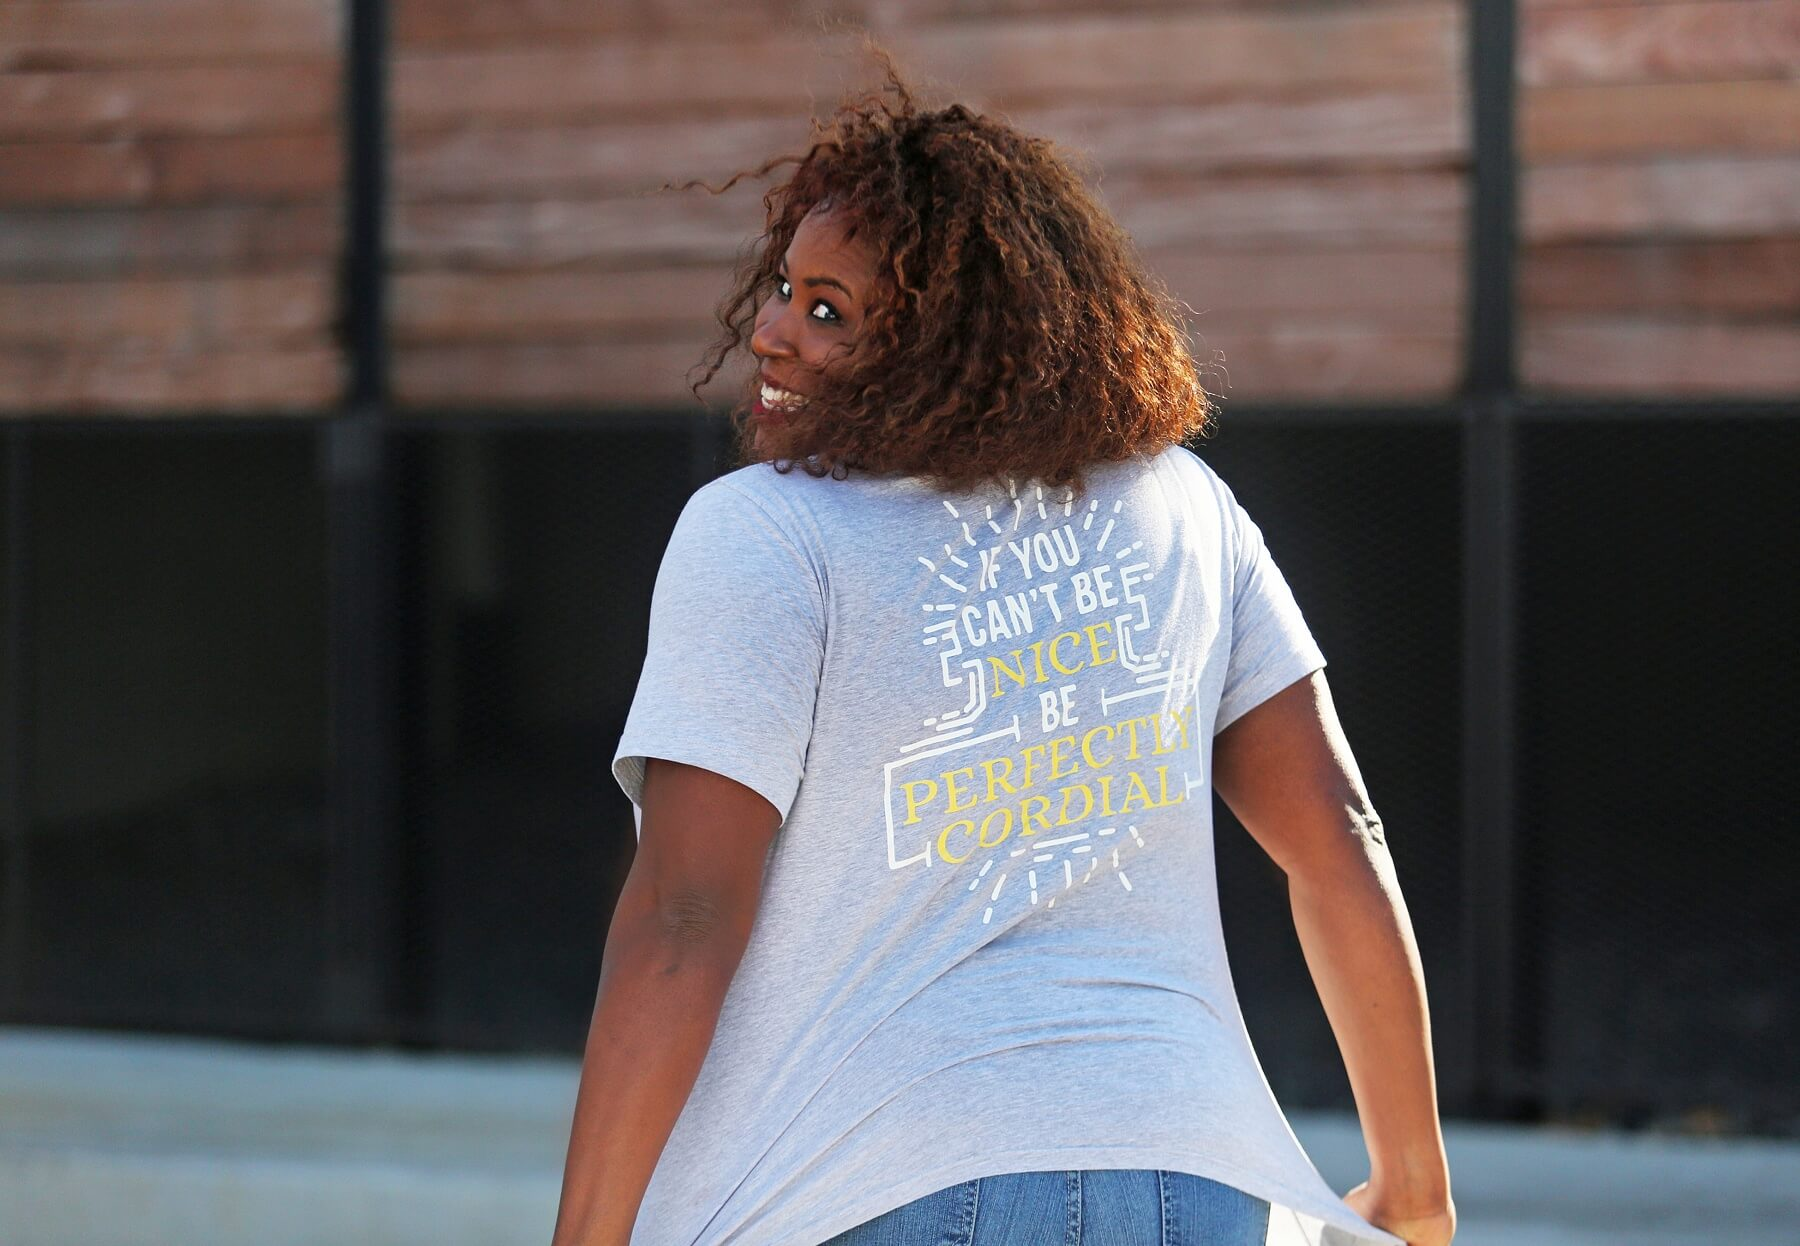 Perfectly Cordial T-shirt on Rhonda Cammon